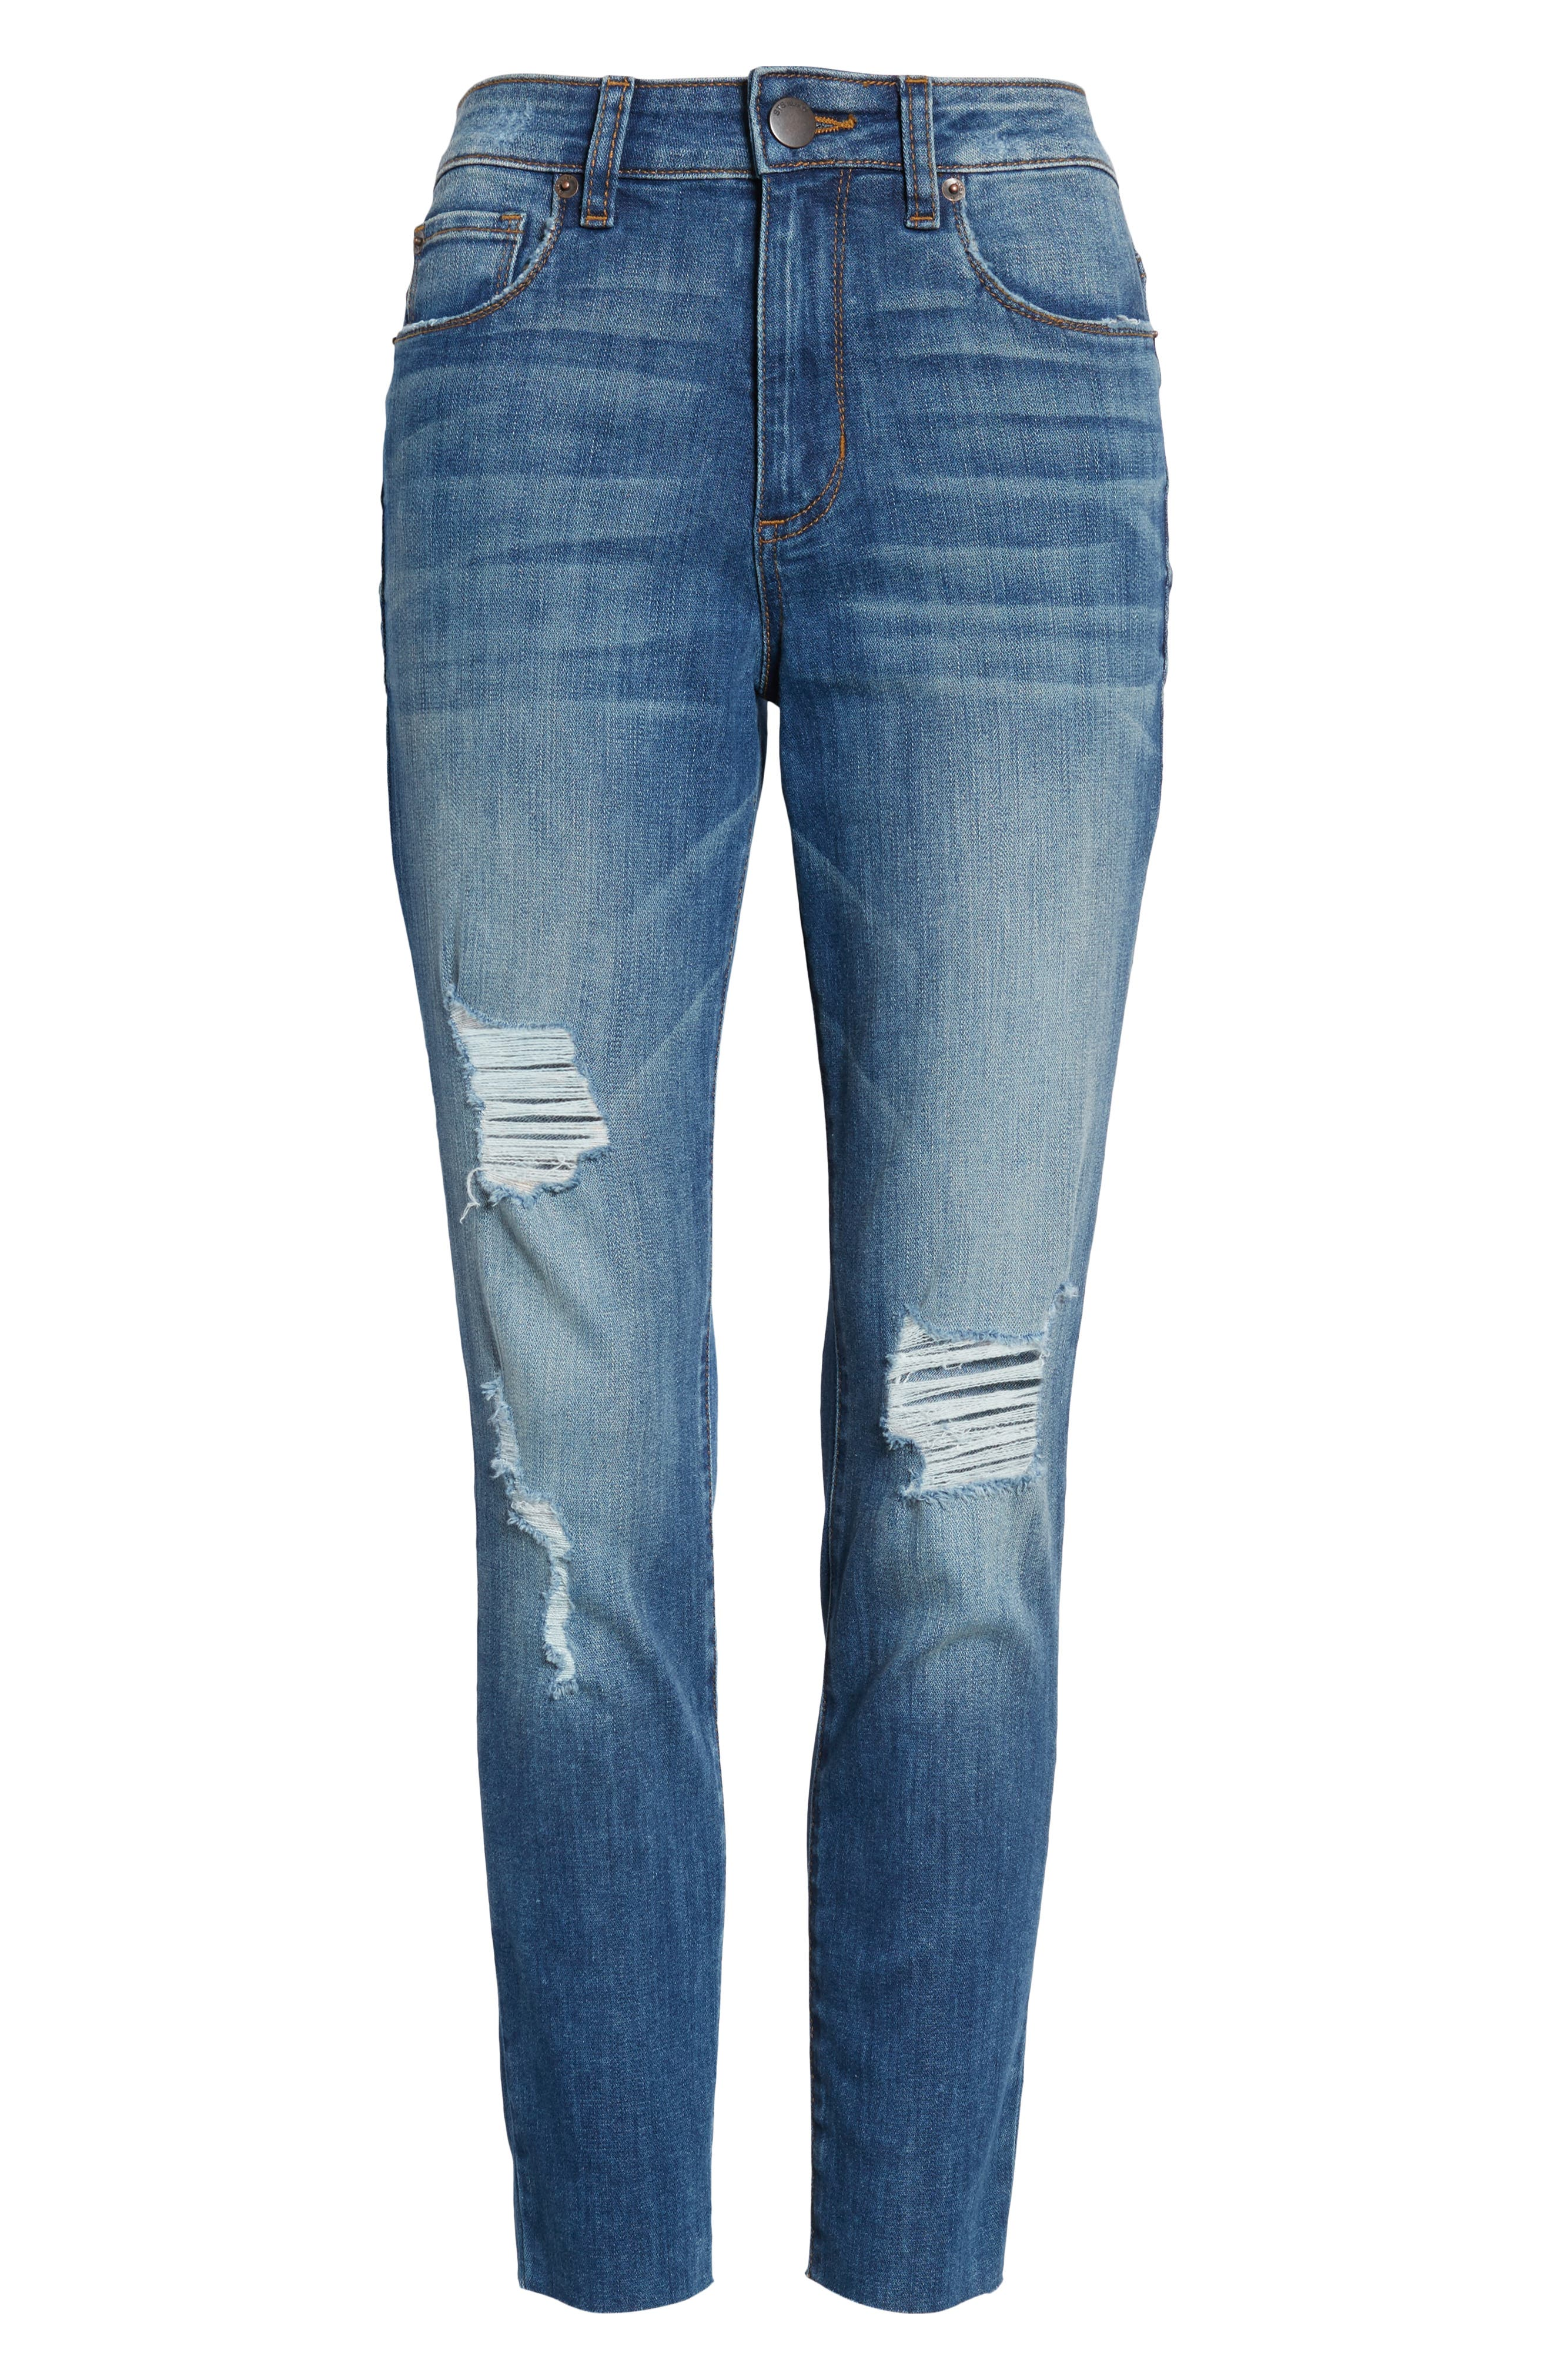 Ellie Ripped High Rise Cropped Jeans,                             Alternate thumbnail 7, color,                             Lamont W/ Med Ba